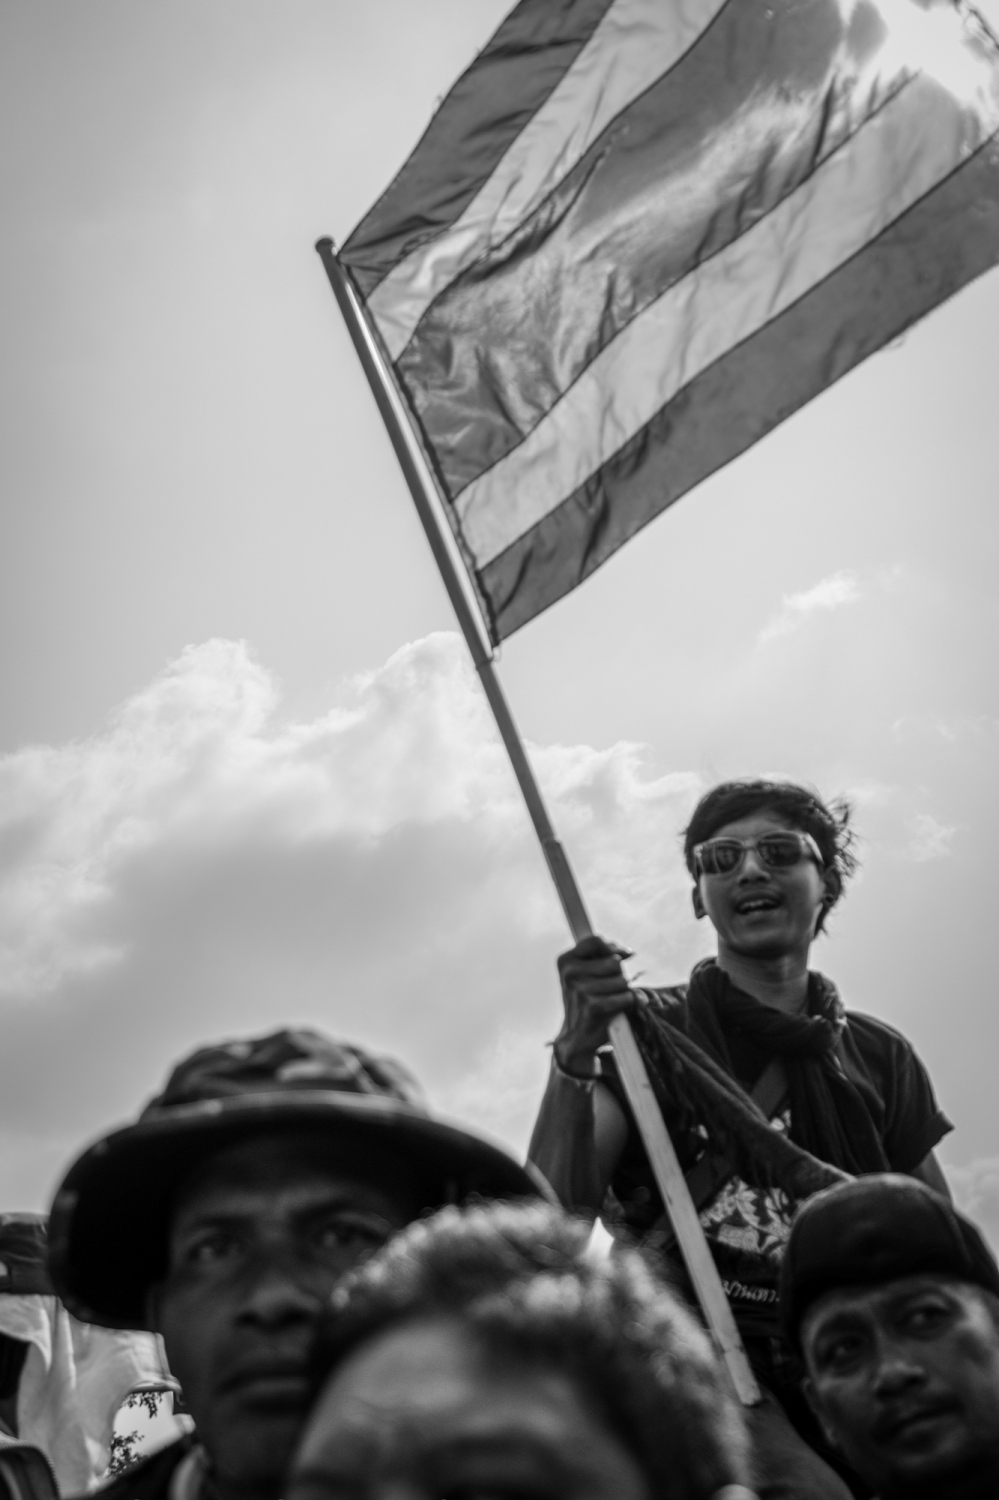 Art and Documentary Photography - Loading 20140218-acj-bangkokshutdown-50.jpg